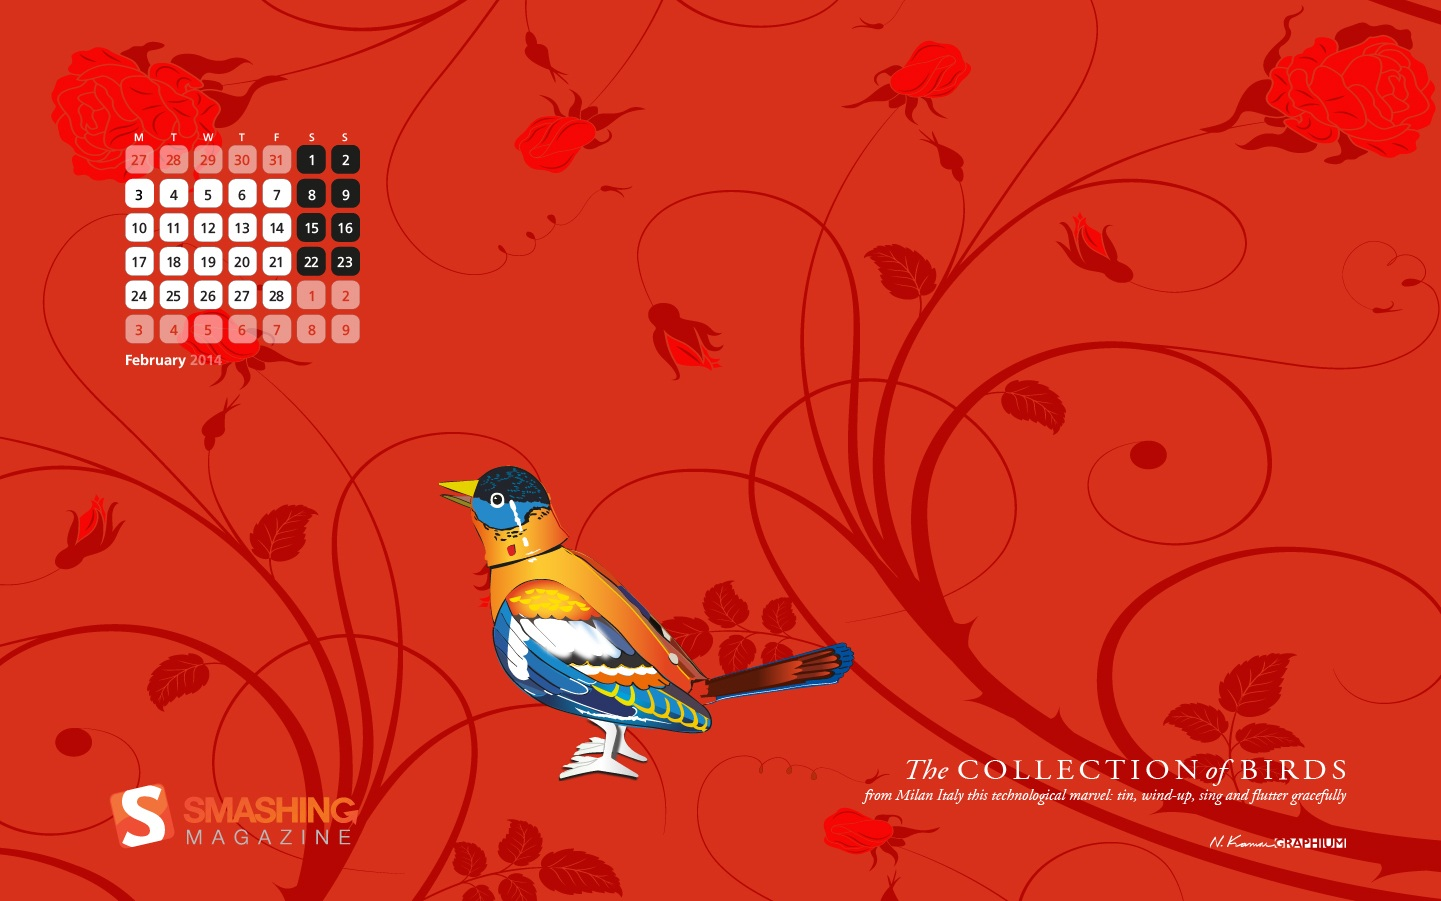 In January Calendar Wallpaper 49881